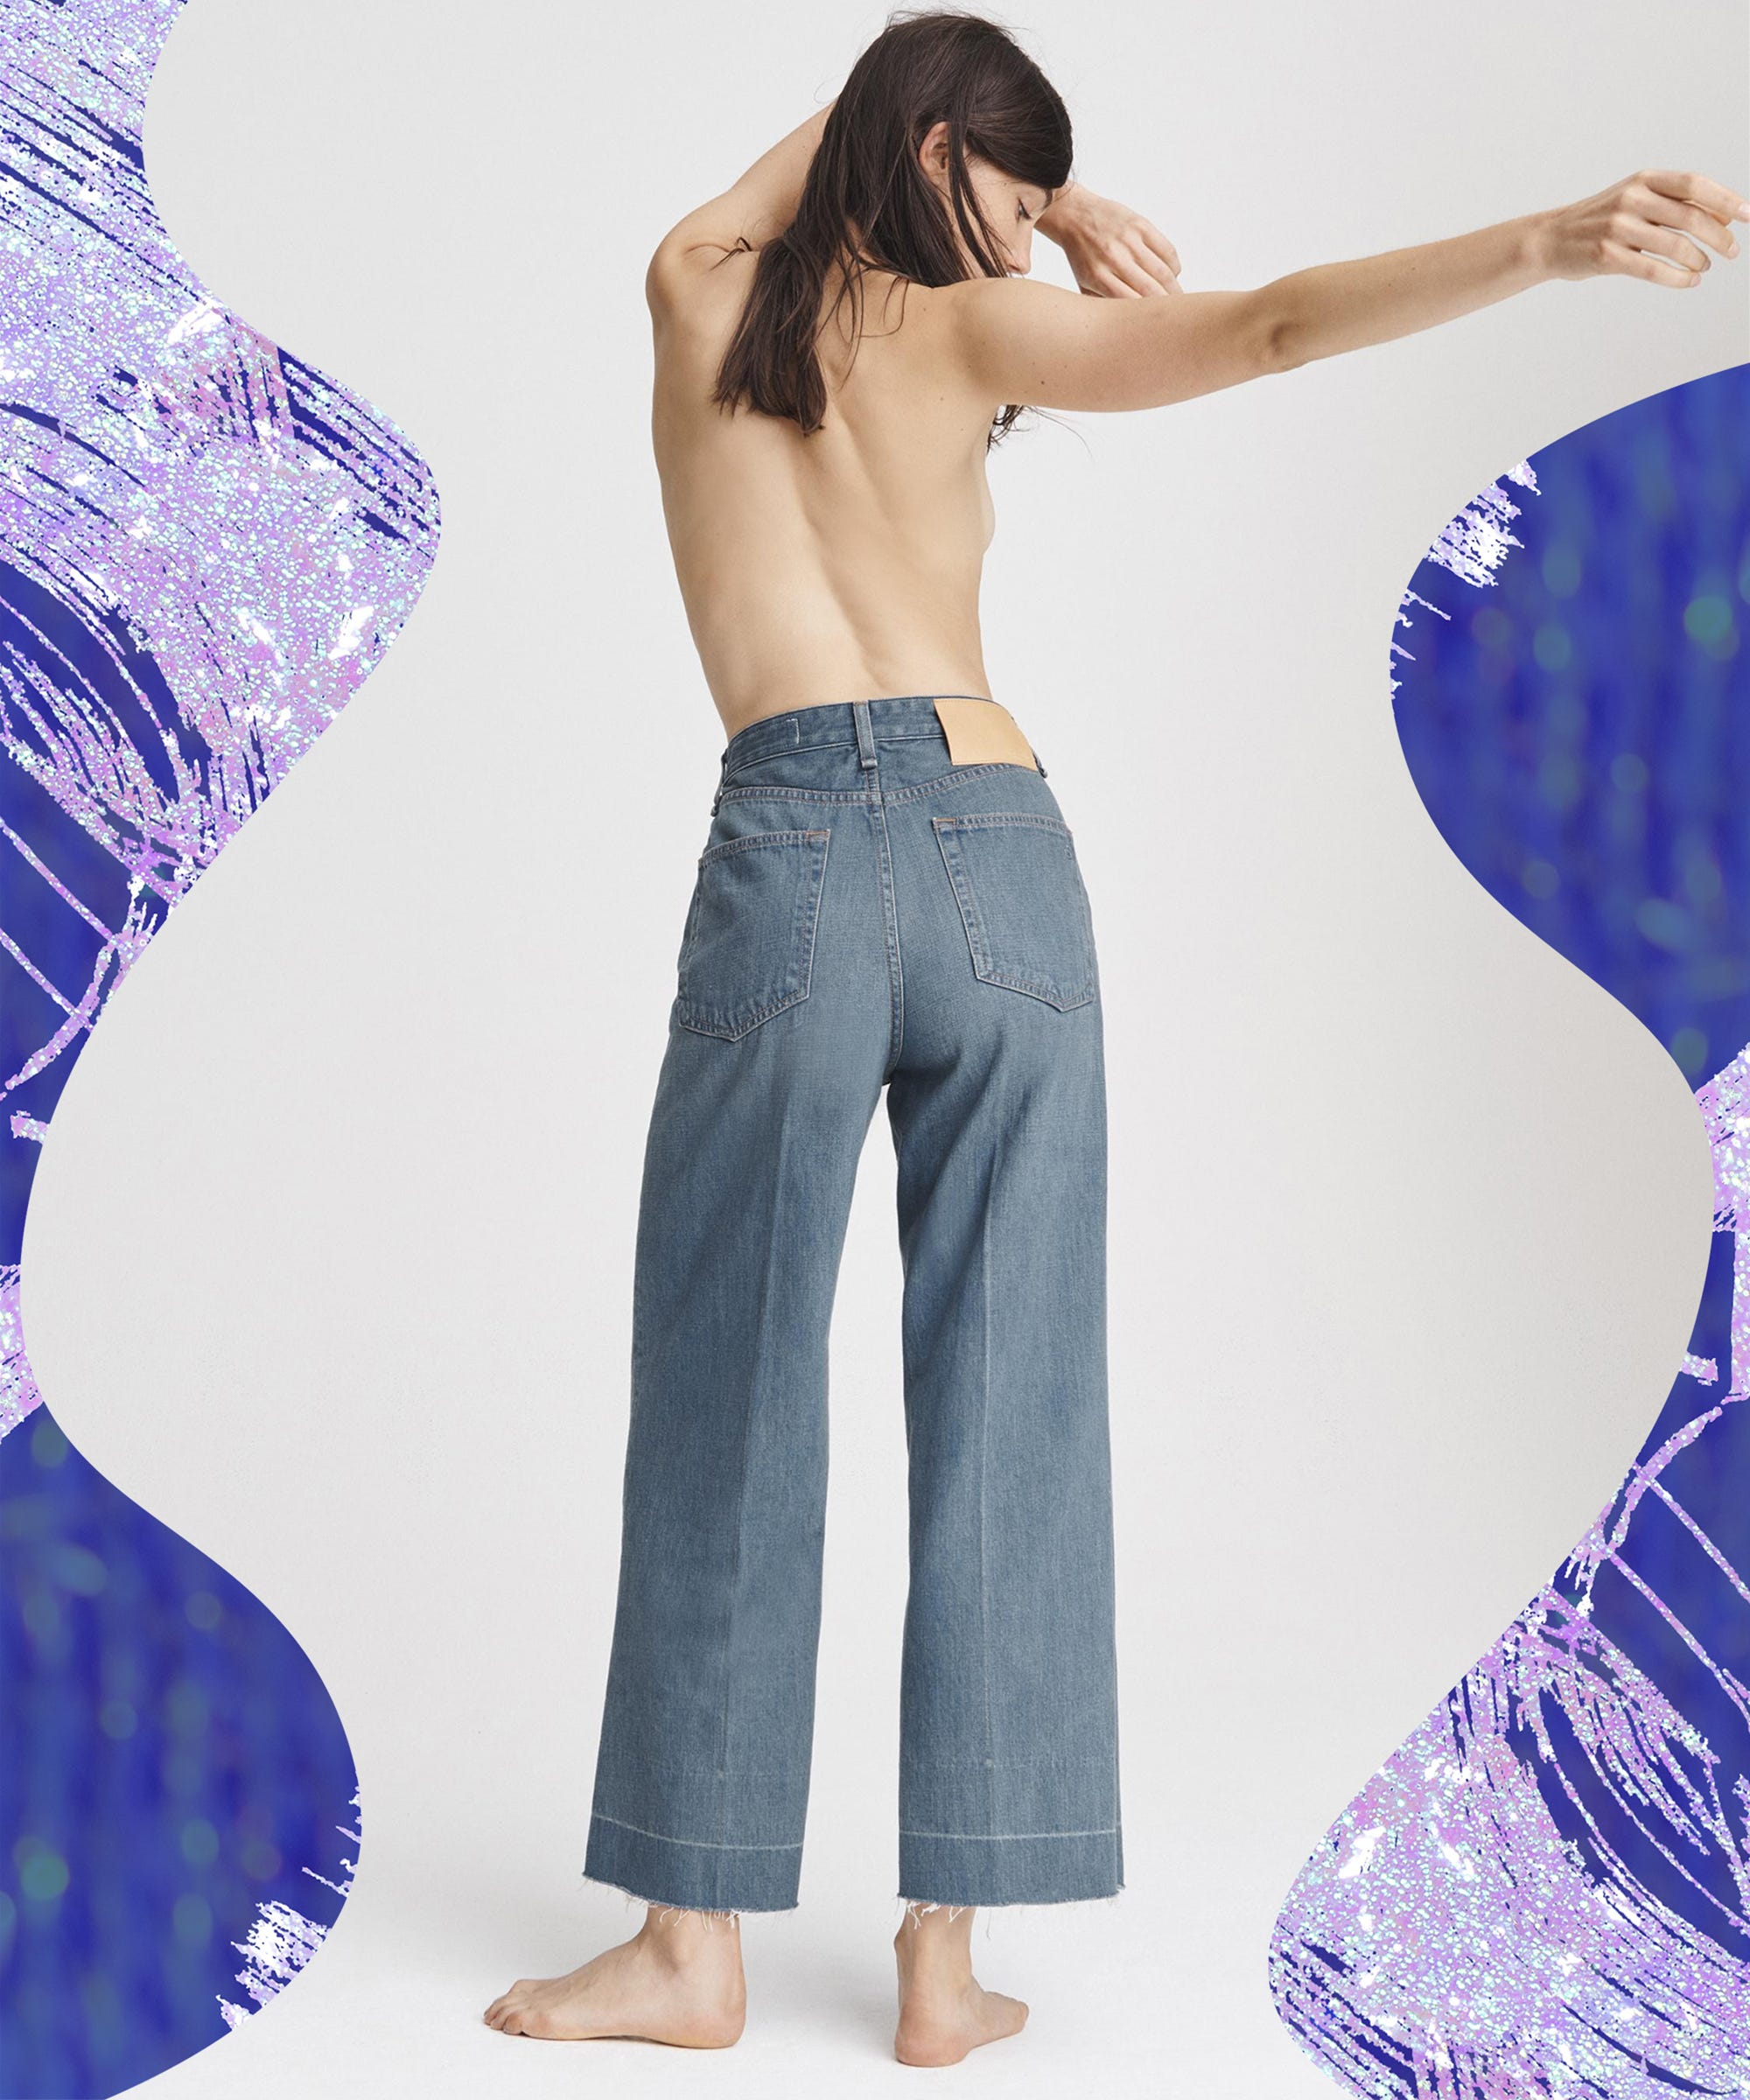 7 Classic Pairs Of Denim Every Woman Needs In Her Closet